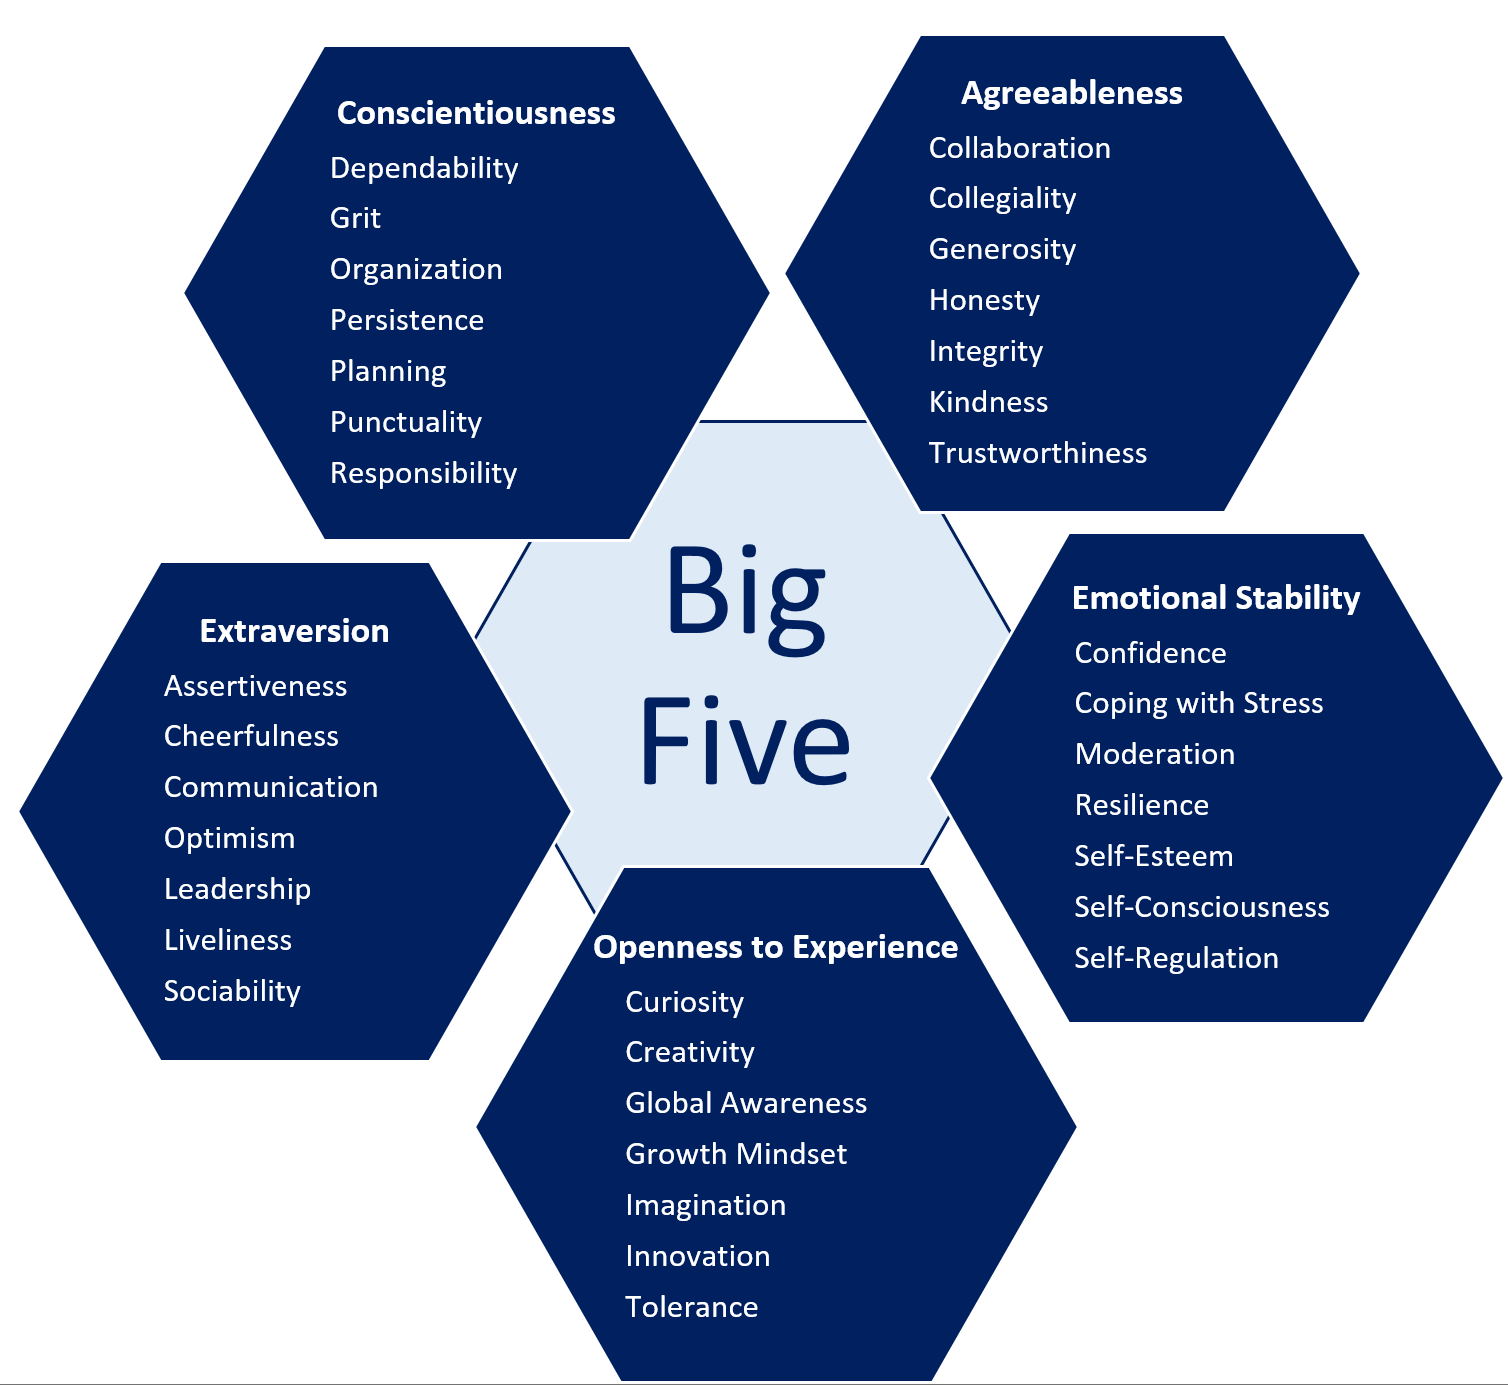 On the Use of the Big Five Model as a SEL Assessment Framework - AWG